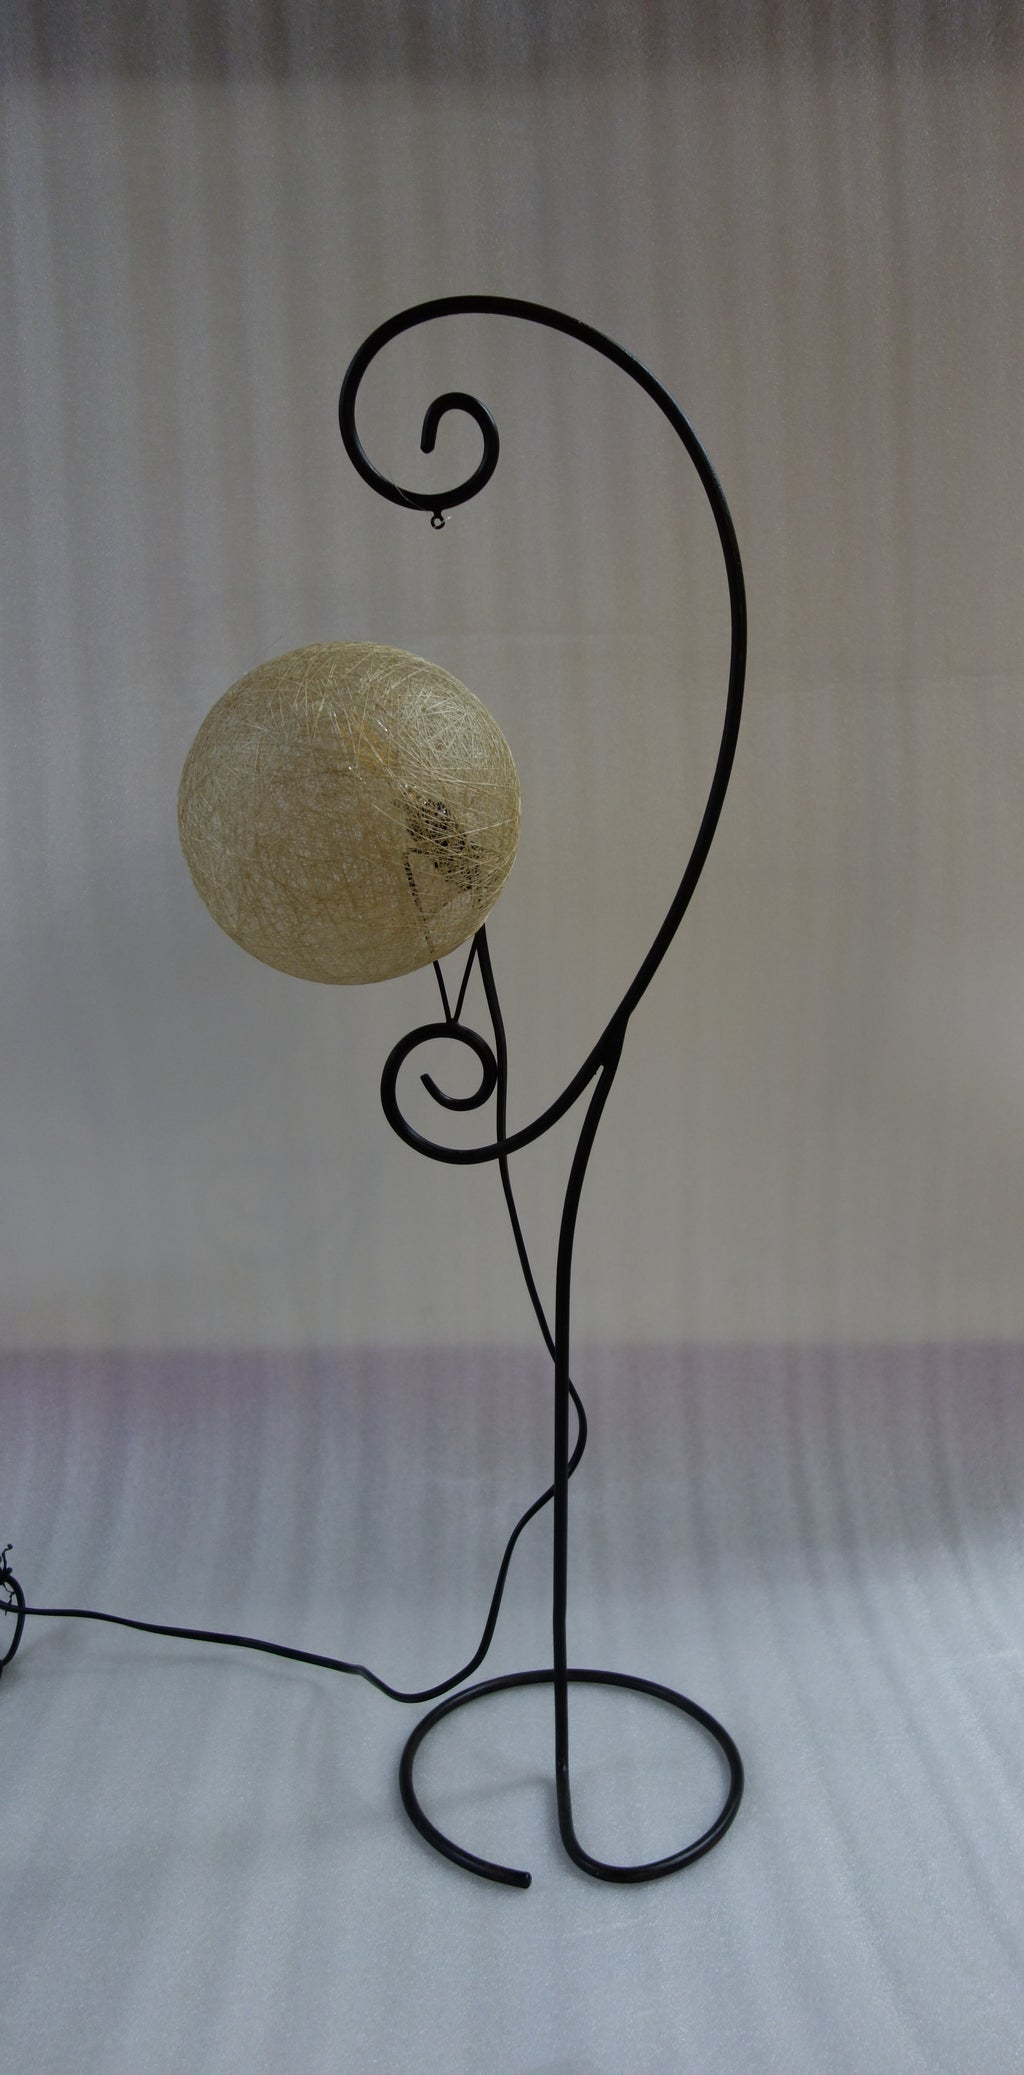 Fibre mesh ball  floor lamp E27 Lightbulb